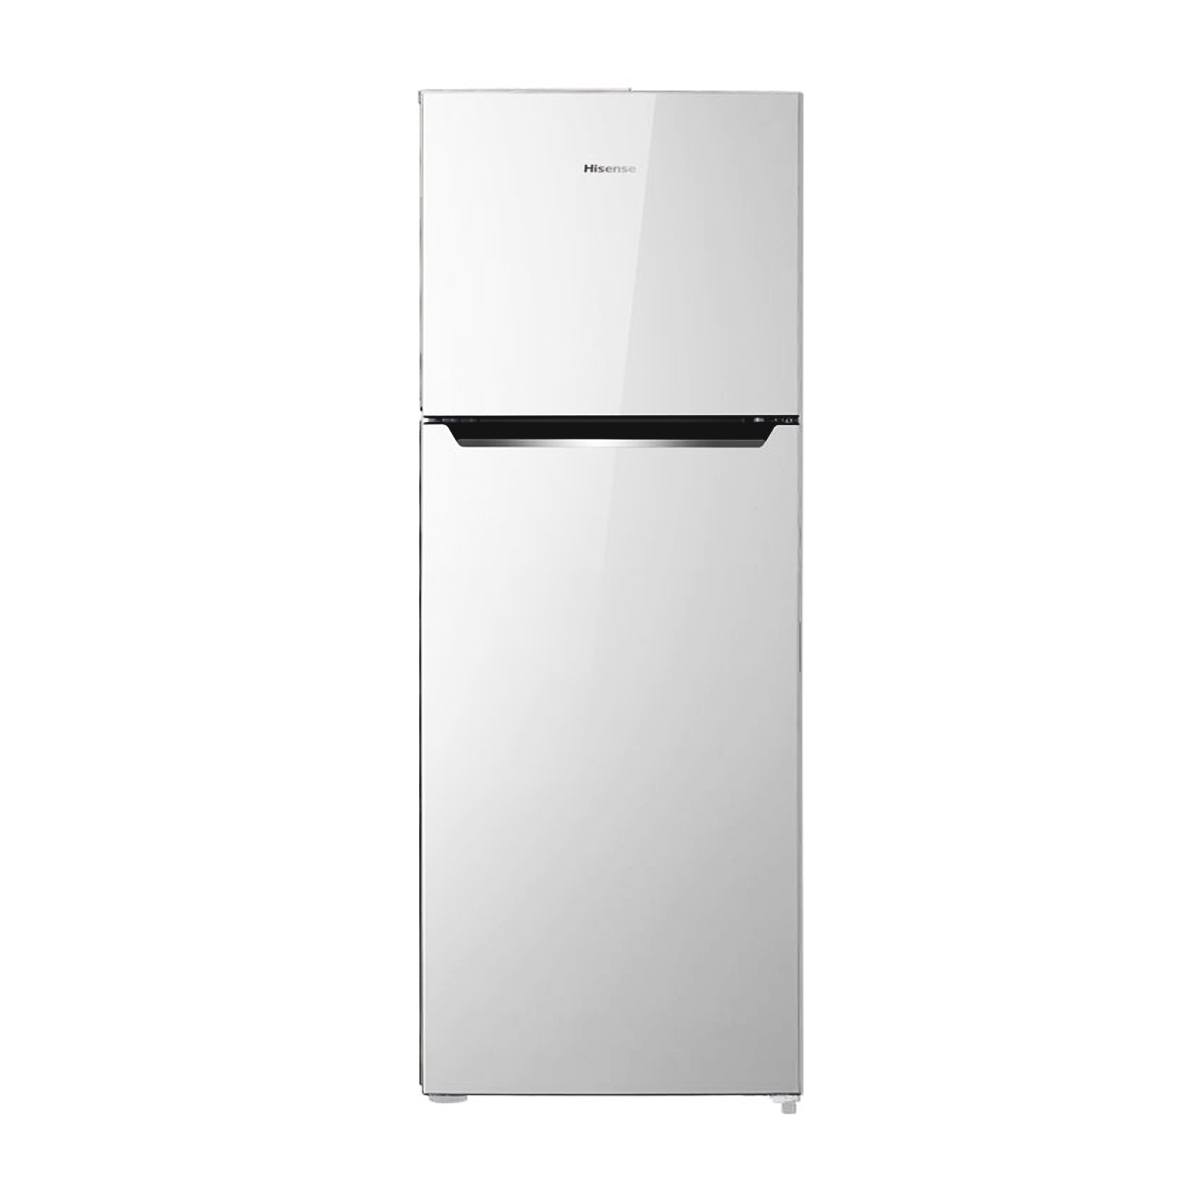 Hisense HR6TFF350 350L Top Mount Fridge